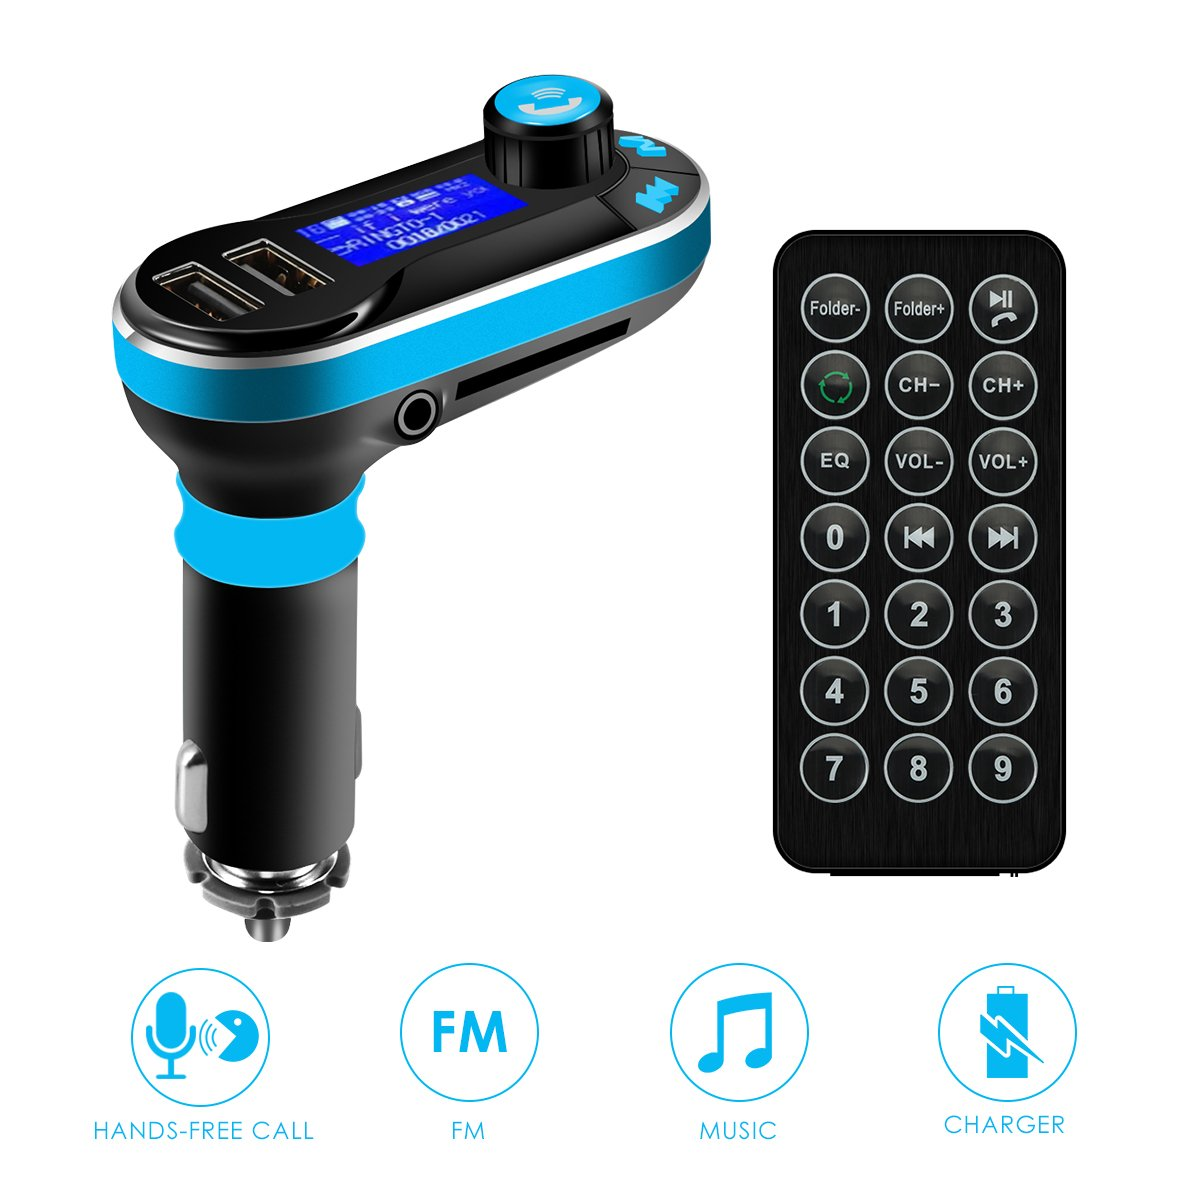 SOONHUA Car Bluetooth FM Transmitter, Wireless in-Car Radio Bluetooth Adapter 5in1 Car Kit Music Player Hand-Free Calling with Remote AUX Cable Dual USB Support SD/TF Card for iPhone Samsung (Blue) by SOONHUA